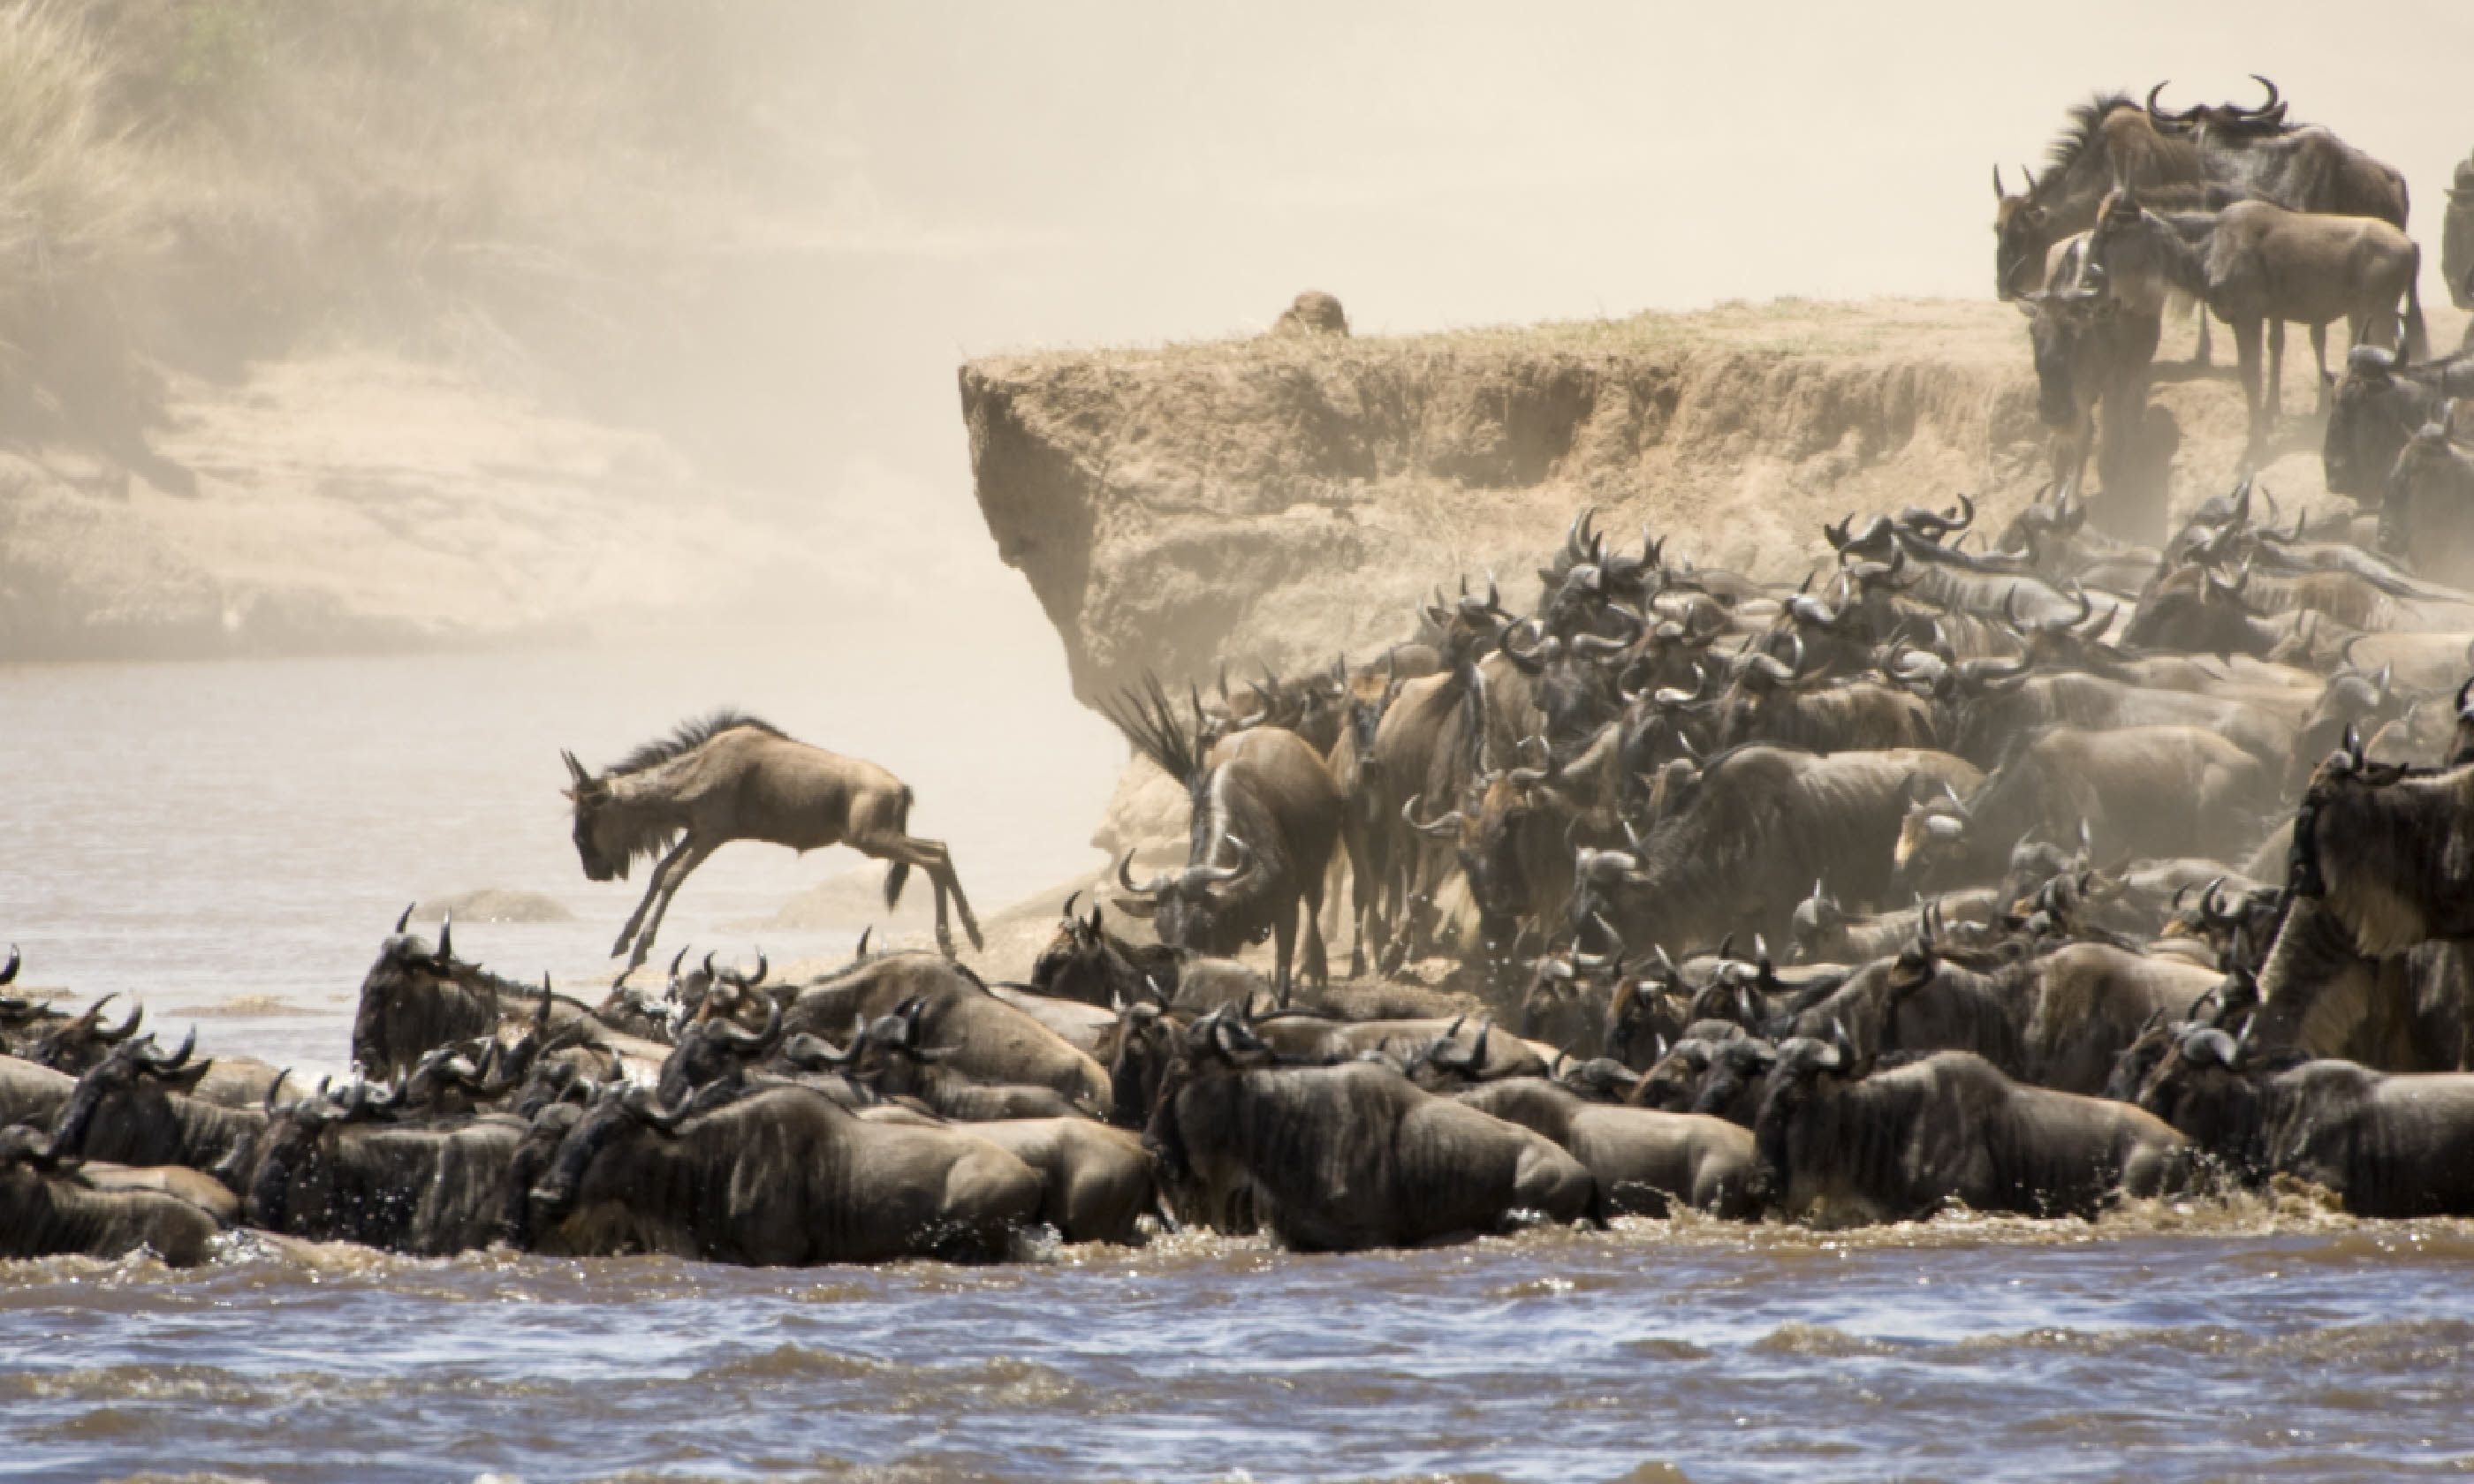 River crossing on the Great Migration, Masai Mara (Shutterstock)